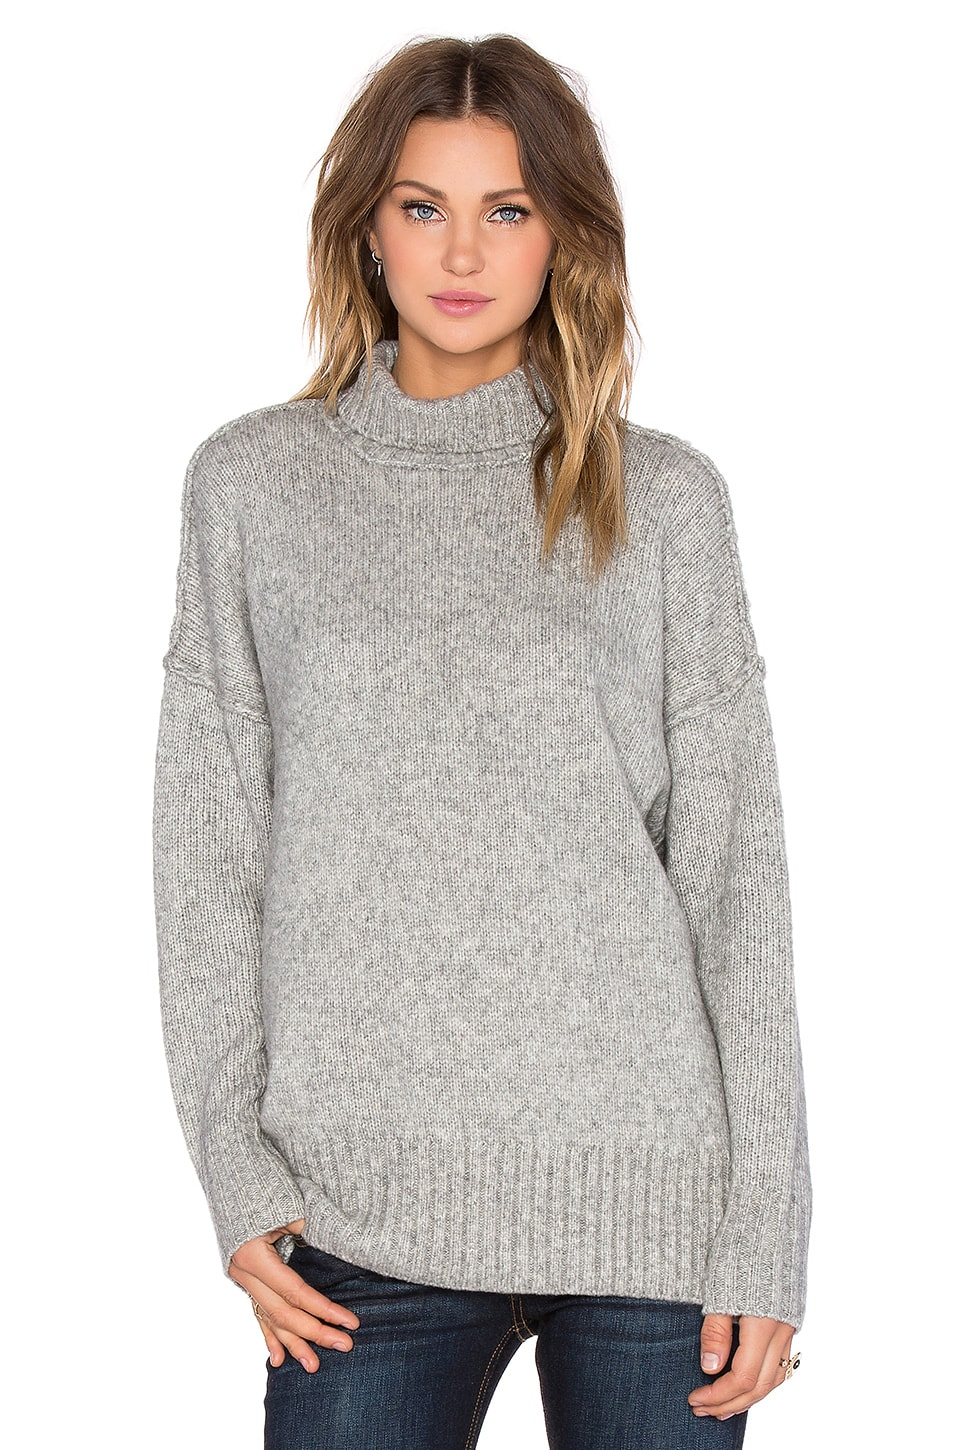 NLST Oversized Turtleneck Sweater in Heather Grey | REVOLVE